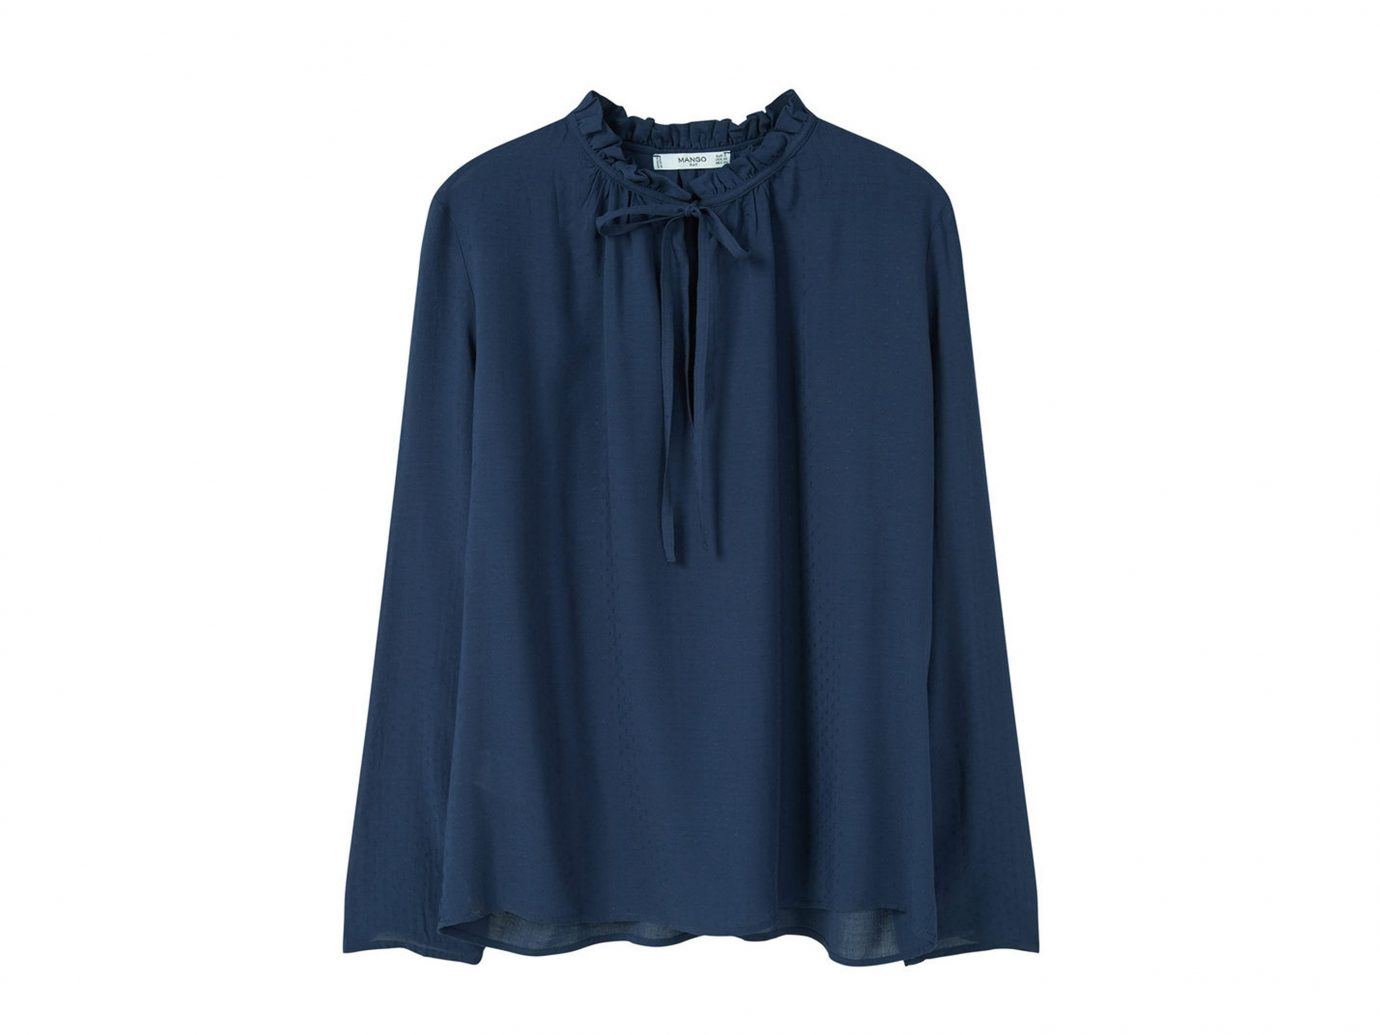 Style + Design clothing sleeve blue blouse outerwear shirt dress neck pocket collar gown textile t shirt clothes